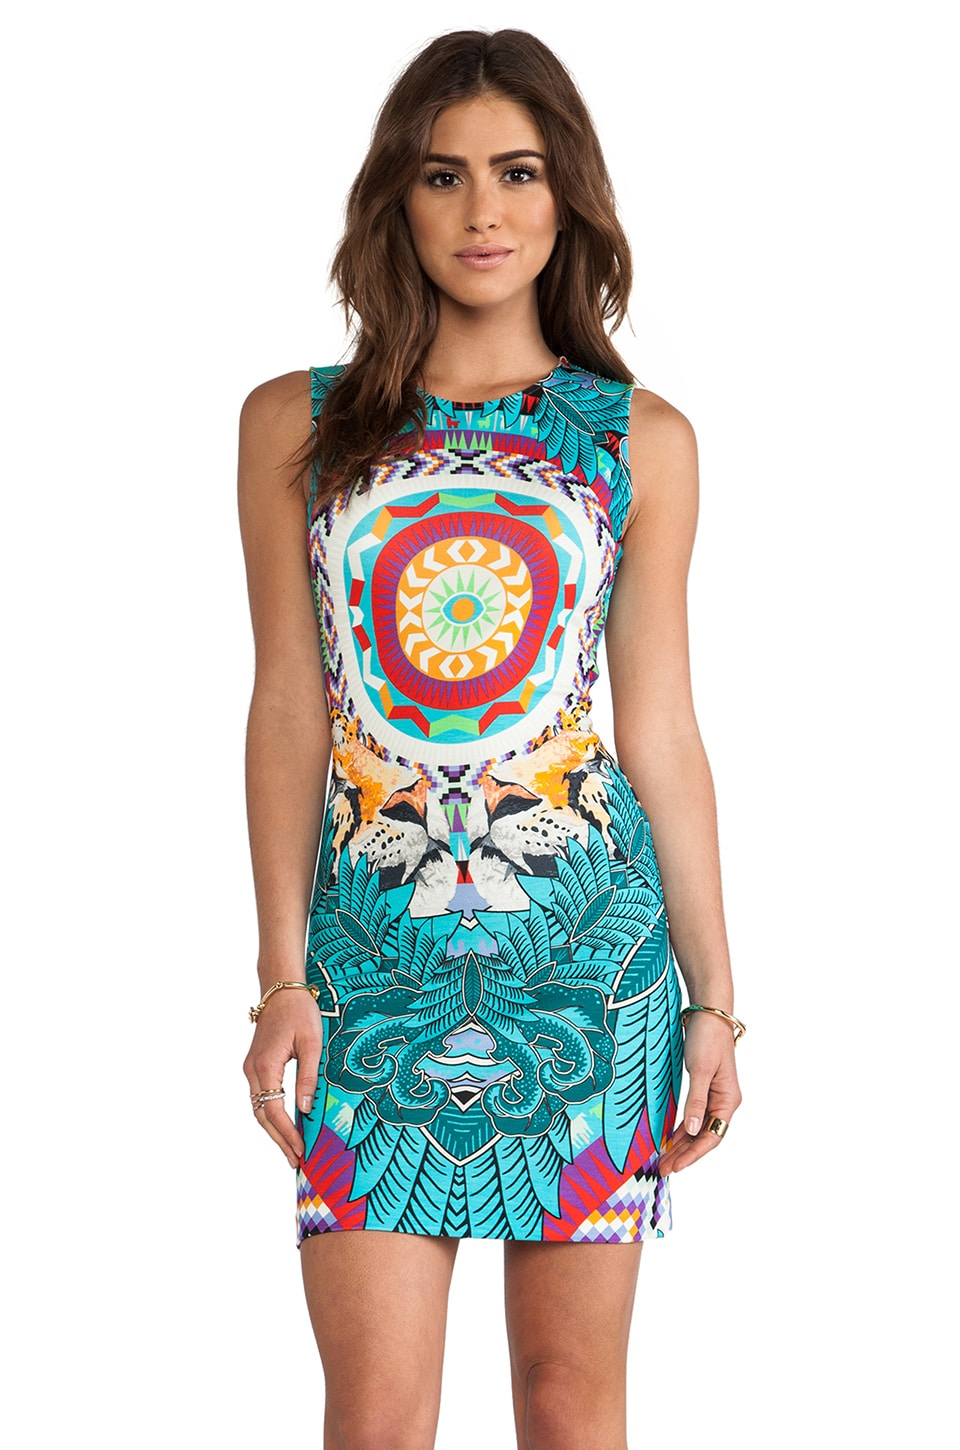 Mara Hoffman Fitted Mini Dress in Jungle Trip Turquoise